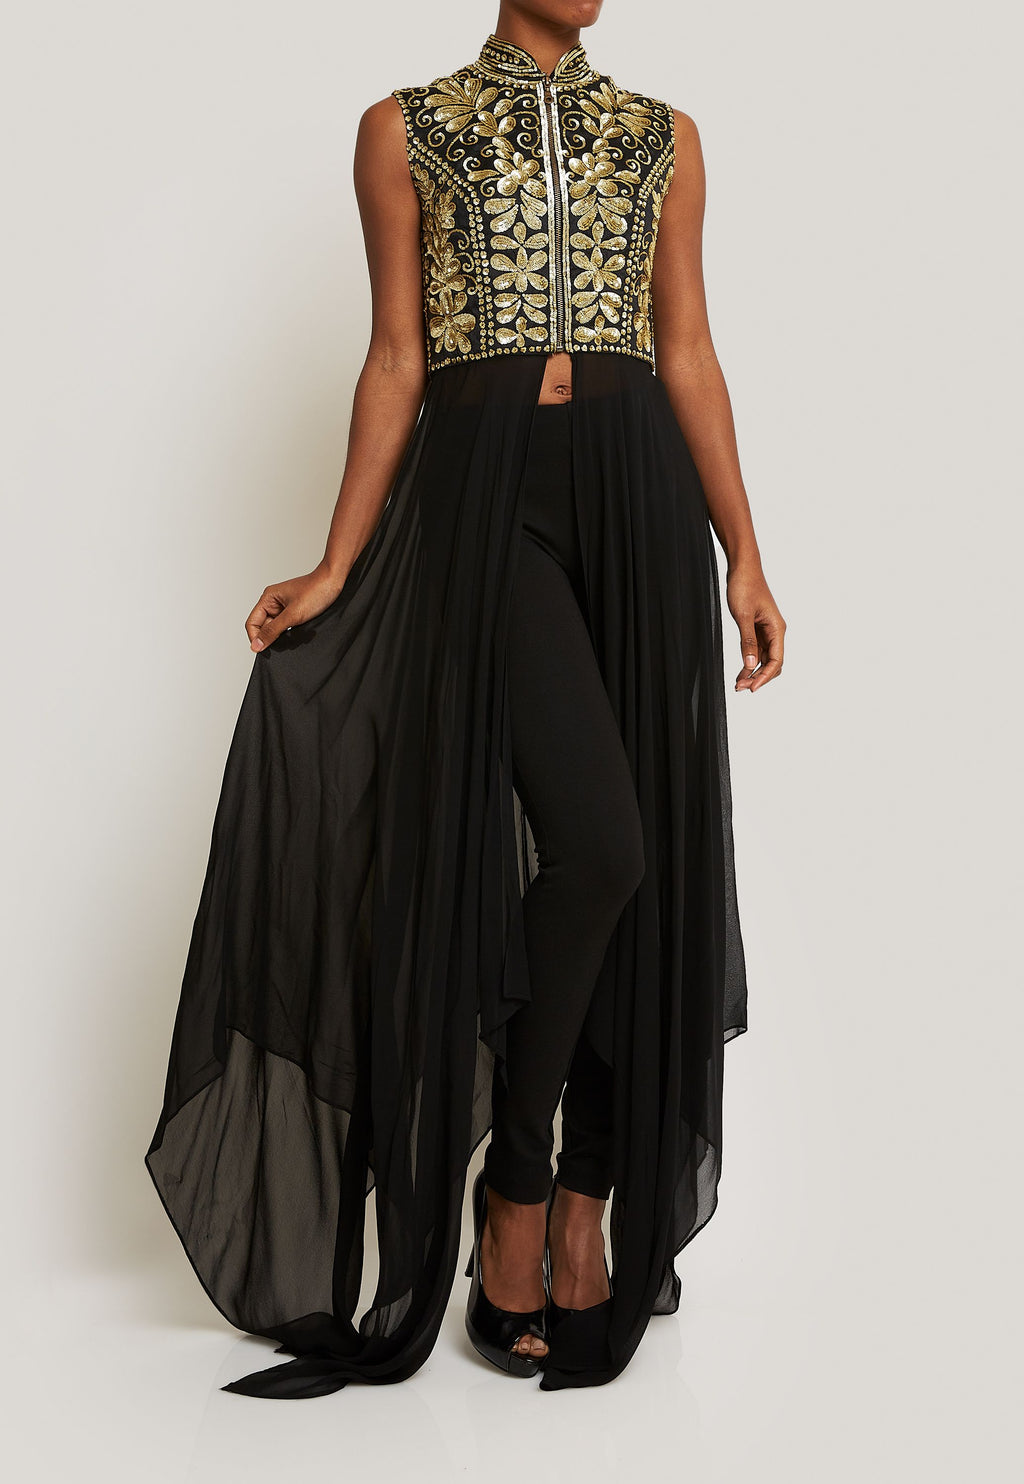 BLACK AND GOLD ENSEMBLE